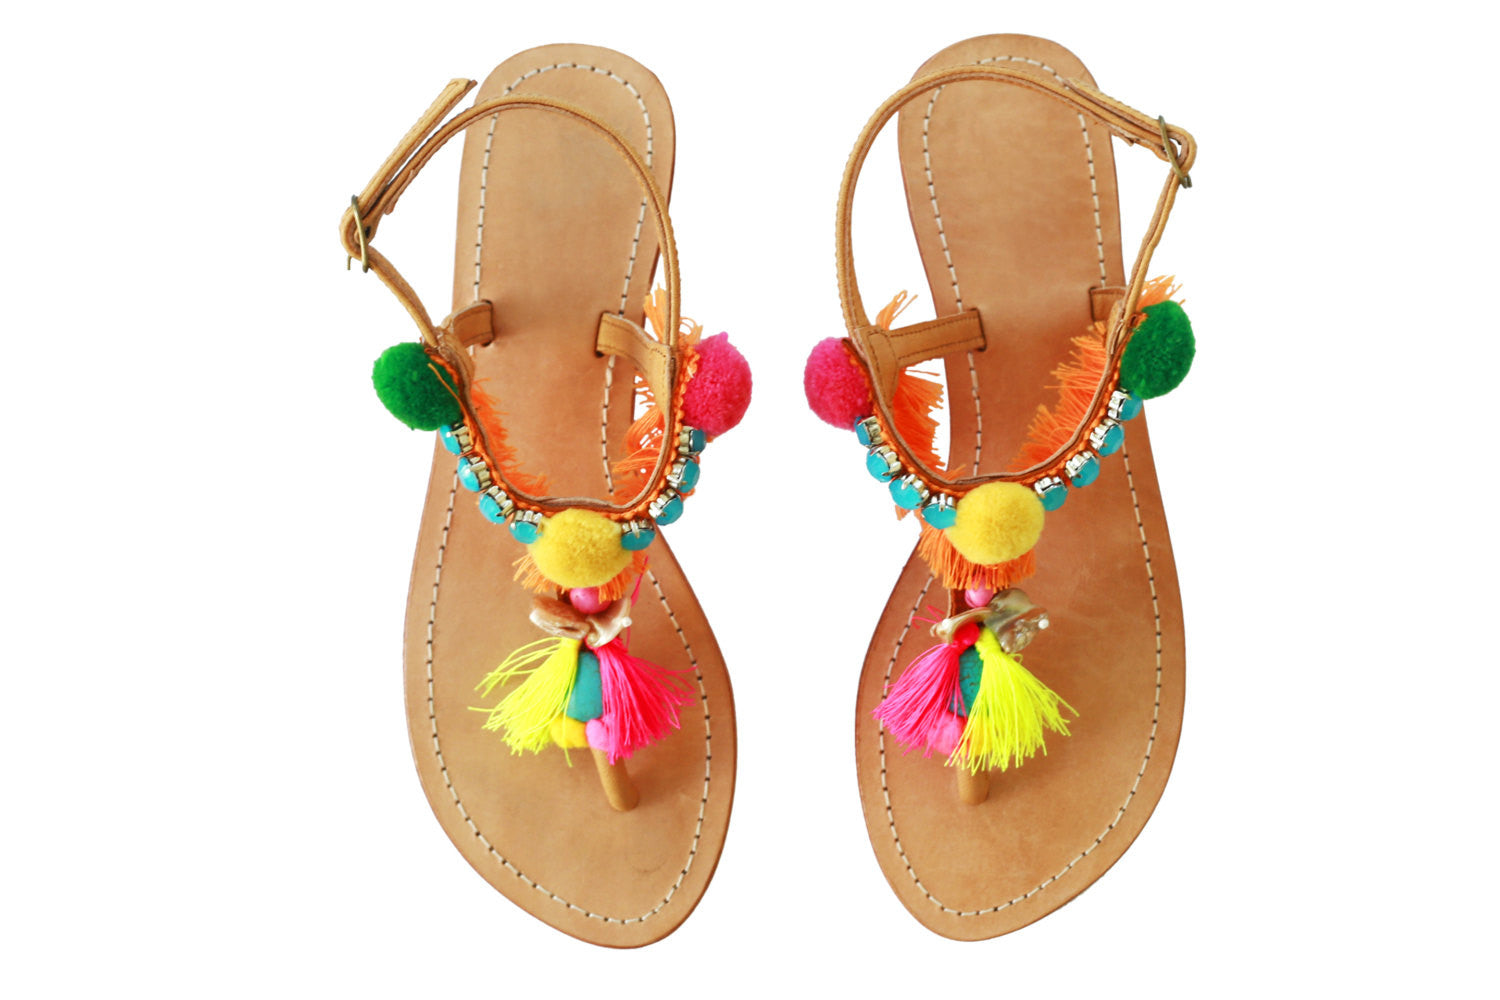 PomPom Sandals; Decorative PomPom sandal; Bohemian pom pom beach sandals